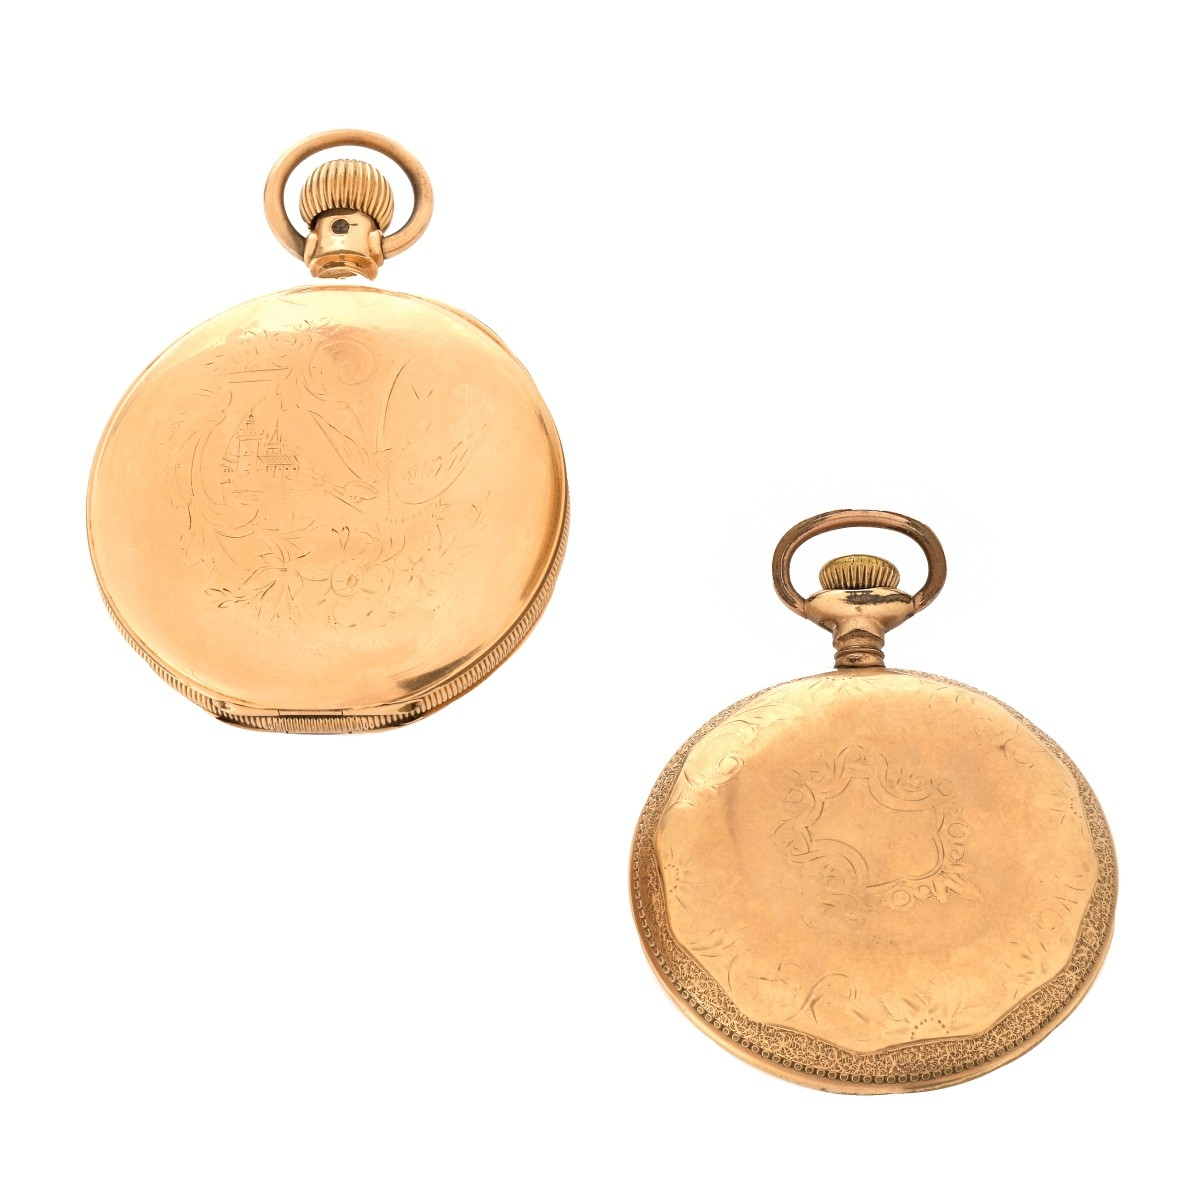 Antique Gold Filled Pocket Watches